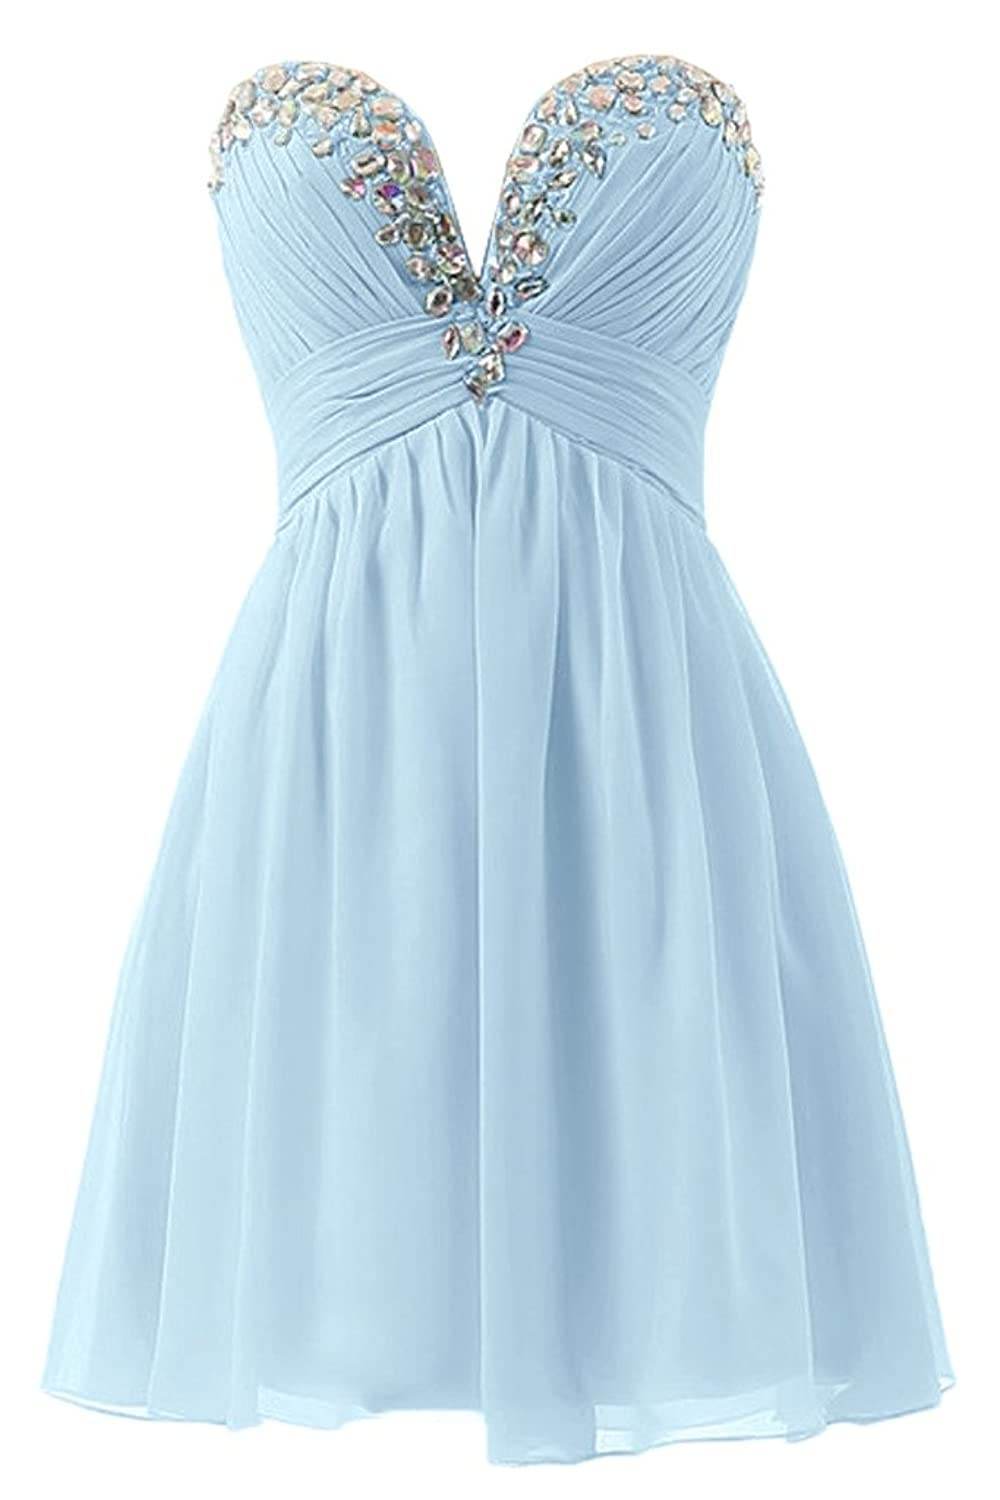 Sunvary Rhinestones A-Line Sweetheart Chiffon Party Gowns Evening Dress Bridesmaid Dresses